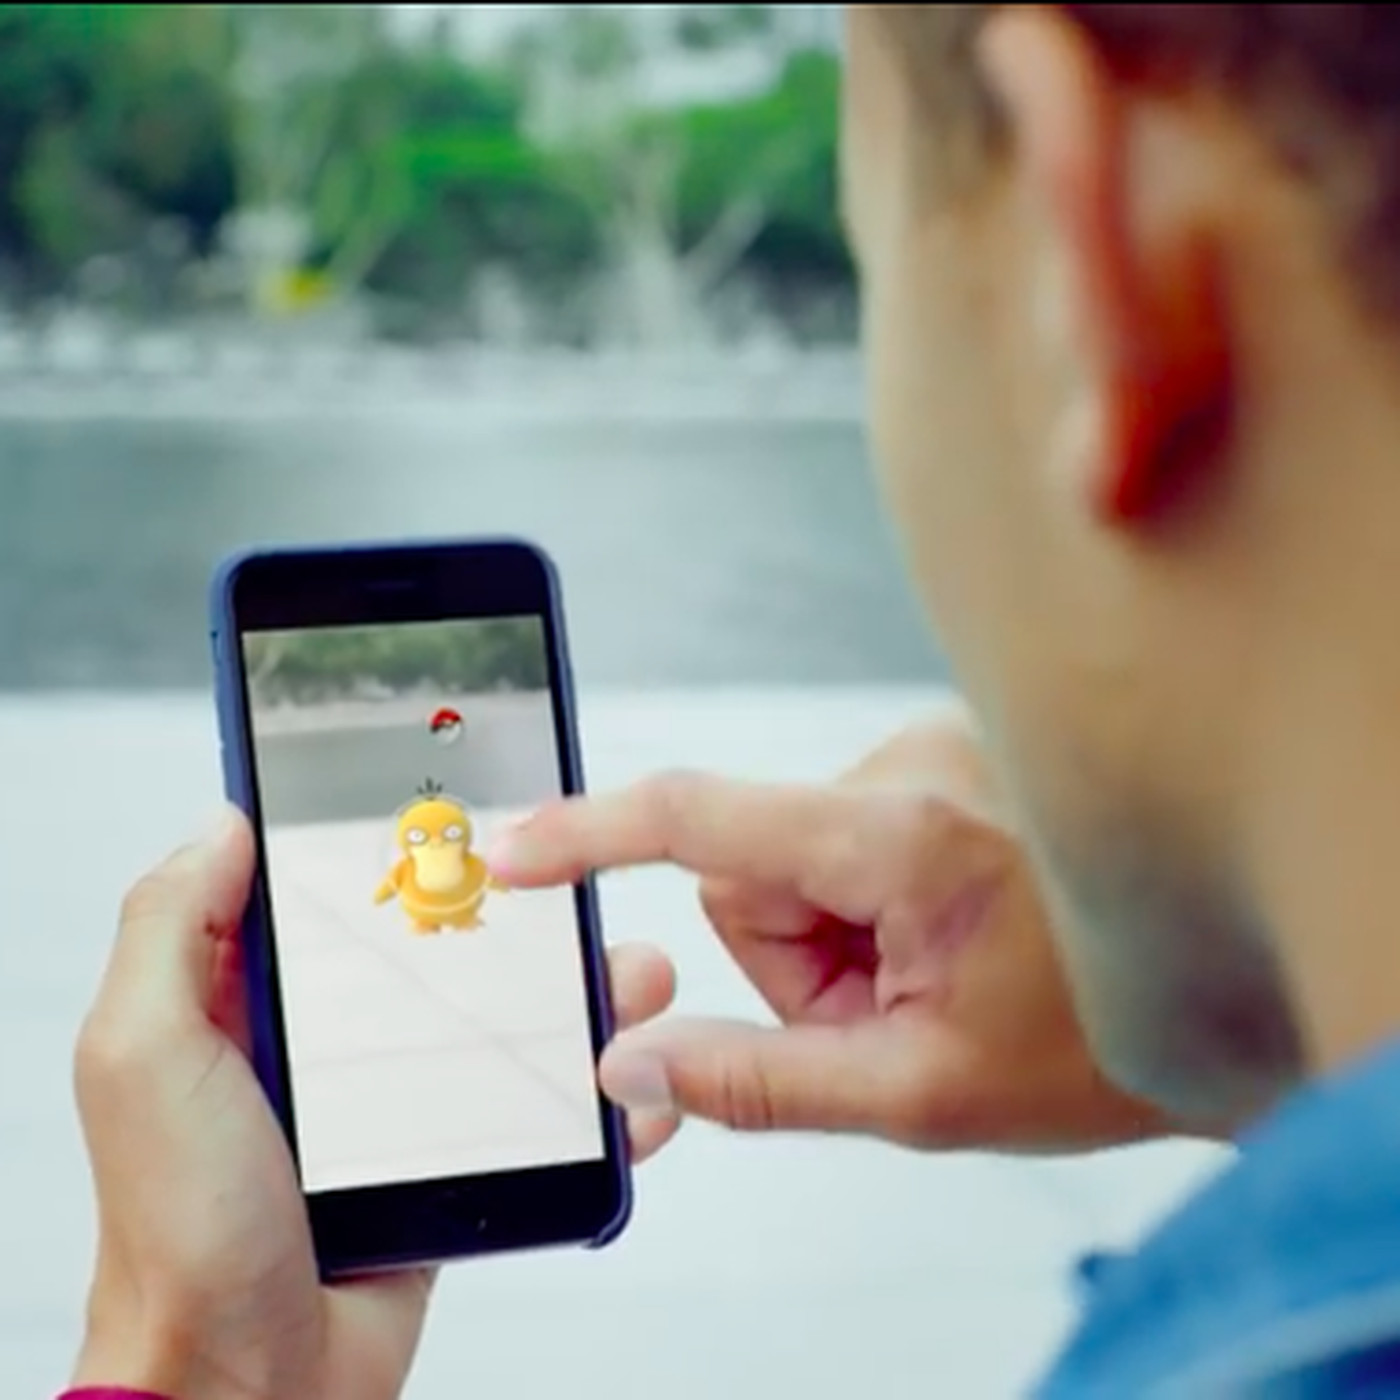 Here's what happens if you're caught cheating in Pokémon Go